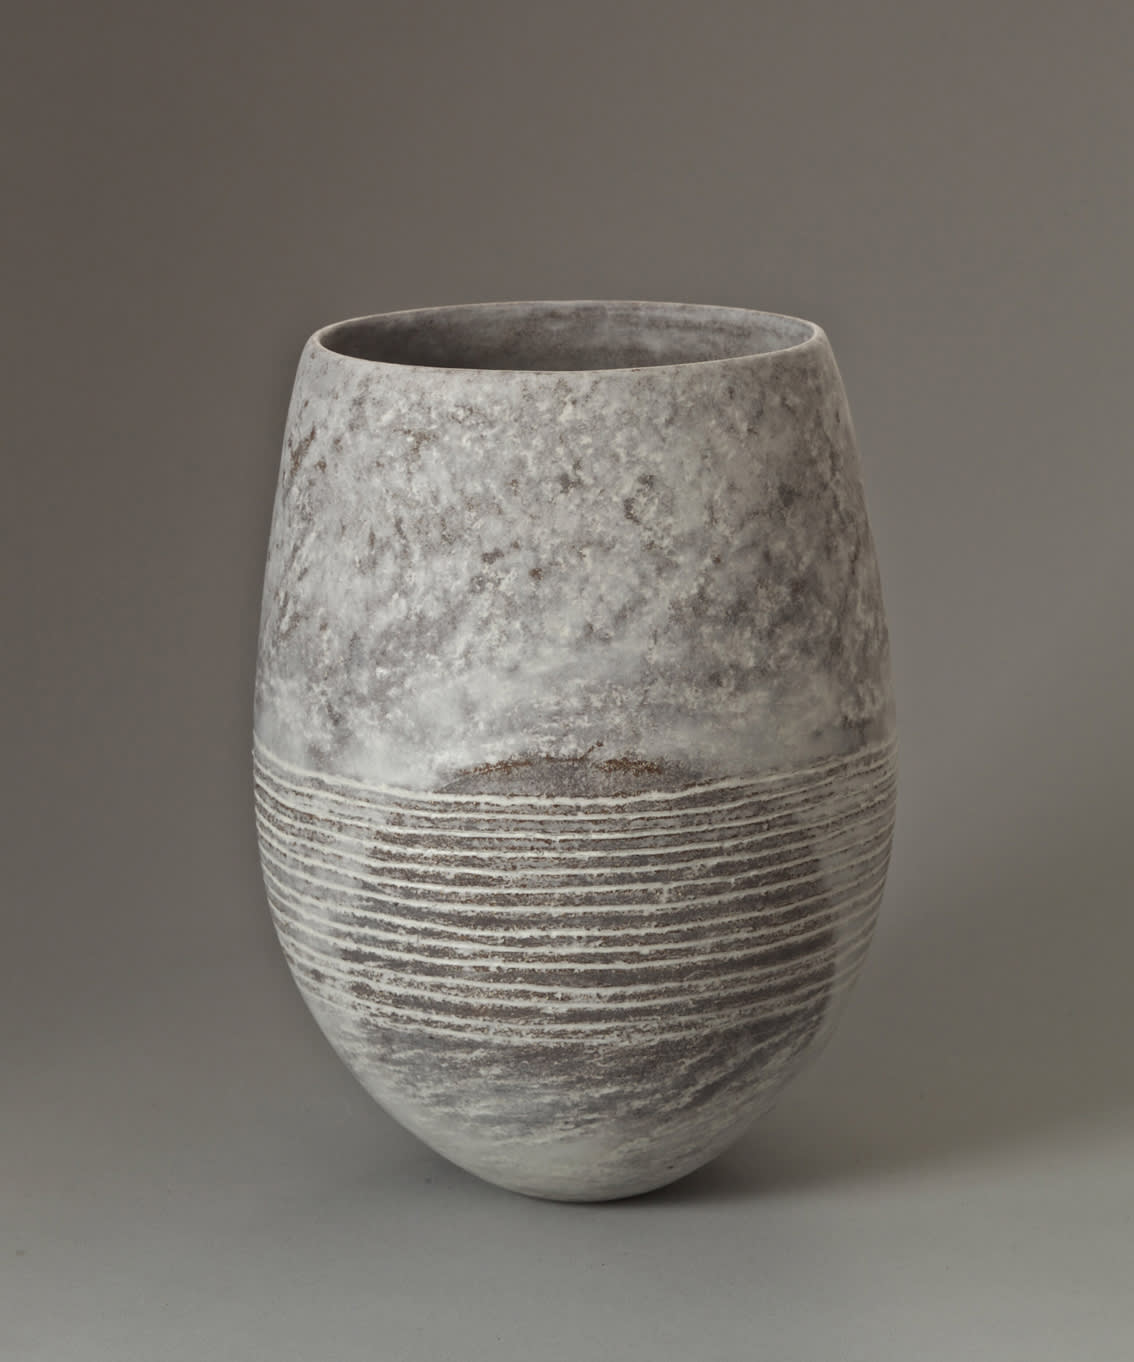 """<span class=""""link fancybox-details-link""""><a href=""""/content/feature/35/artworks8052/"""">View Detail Page</a></span><div class=""""signed_and_dated"""">signed to the base</div> <div class=""""medium"""">stoneware with porcelain slip</div> <div class=""""dimensions"""">h. 28 cm x w. 19 cm x d. 16 cm</div>"""